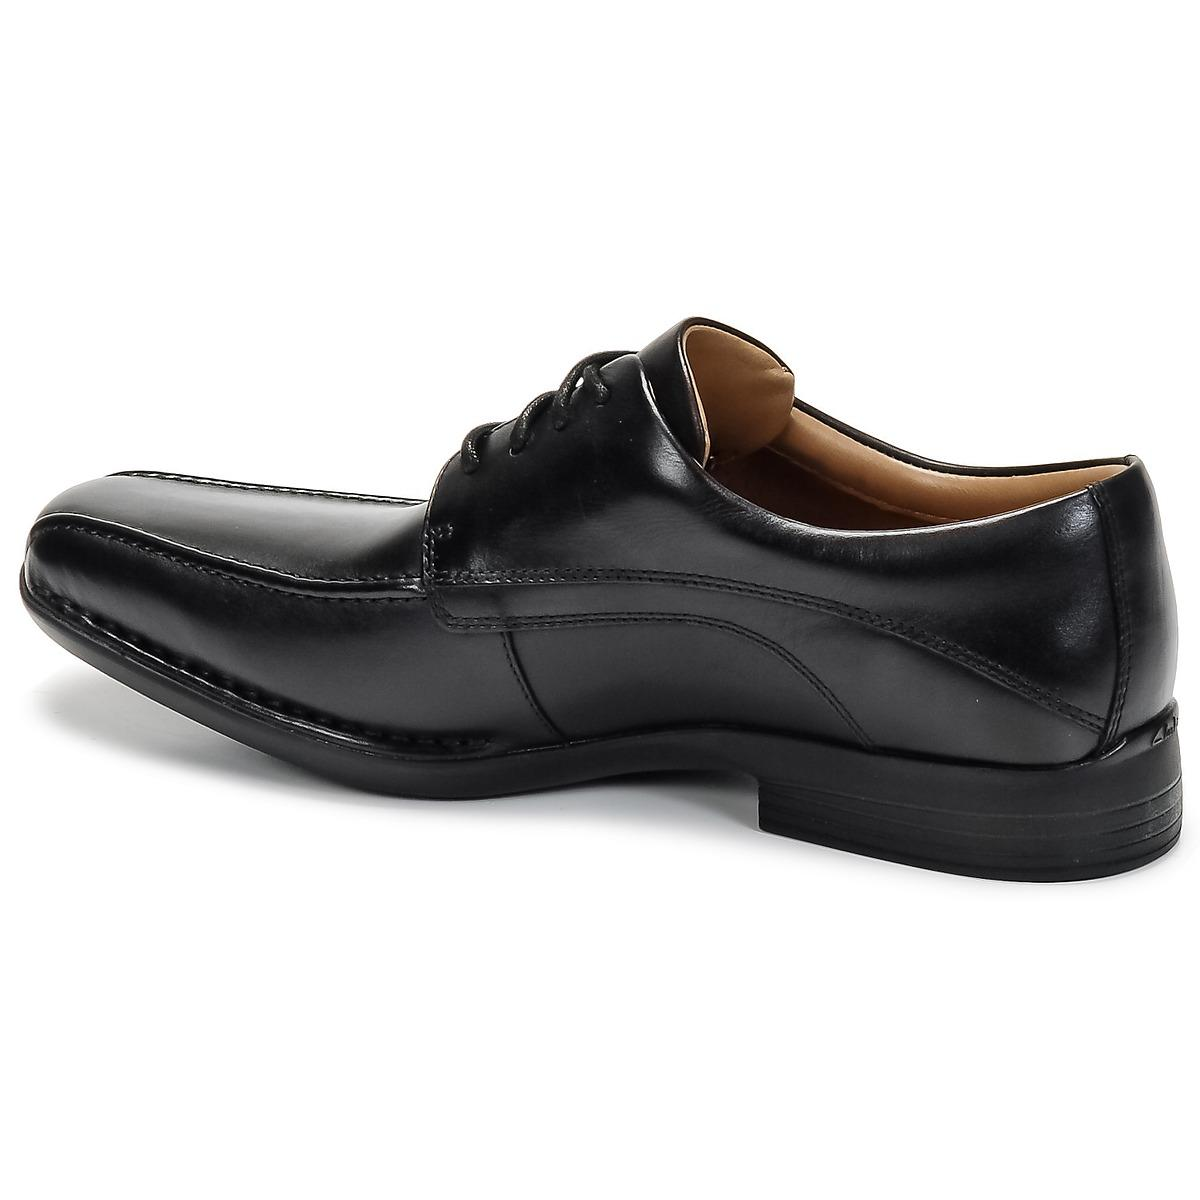 Clarks Francis Casual Shoes in Black for Men